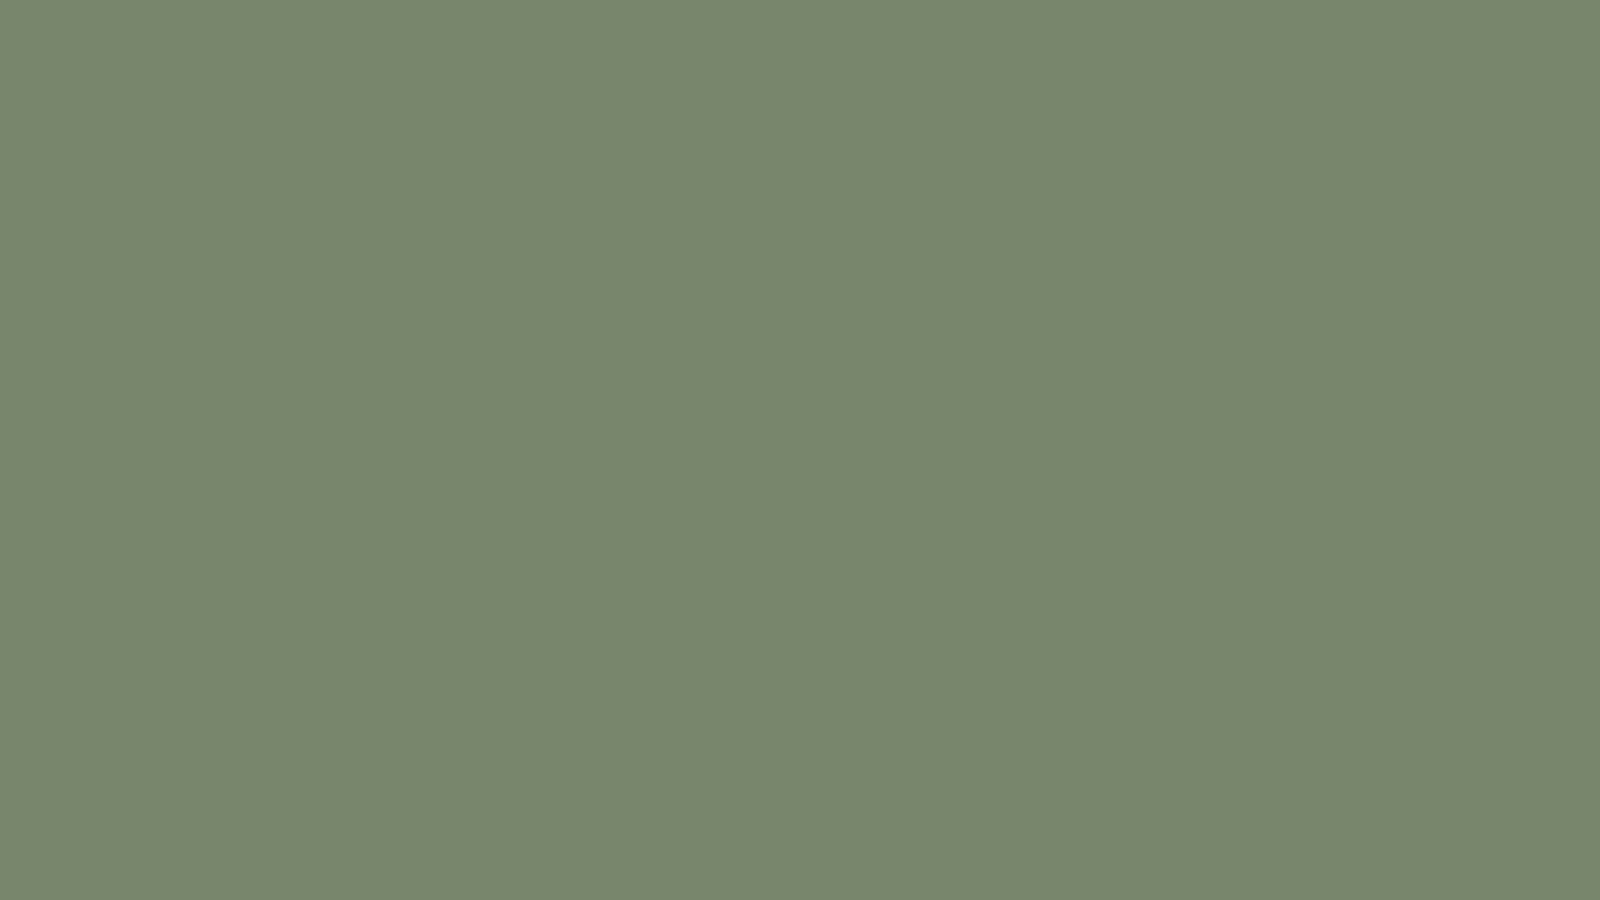 1600x900 Camouflage Green Solid Color Background